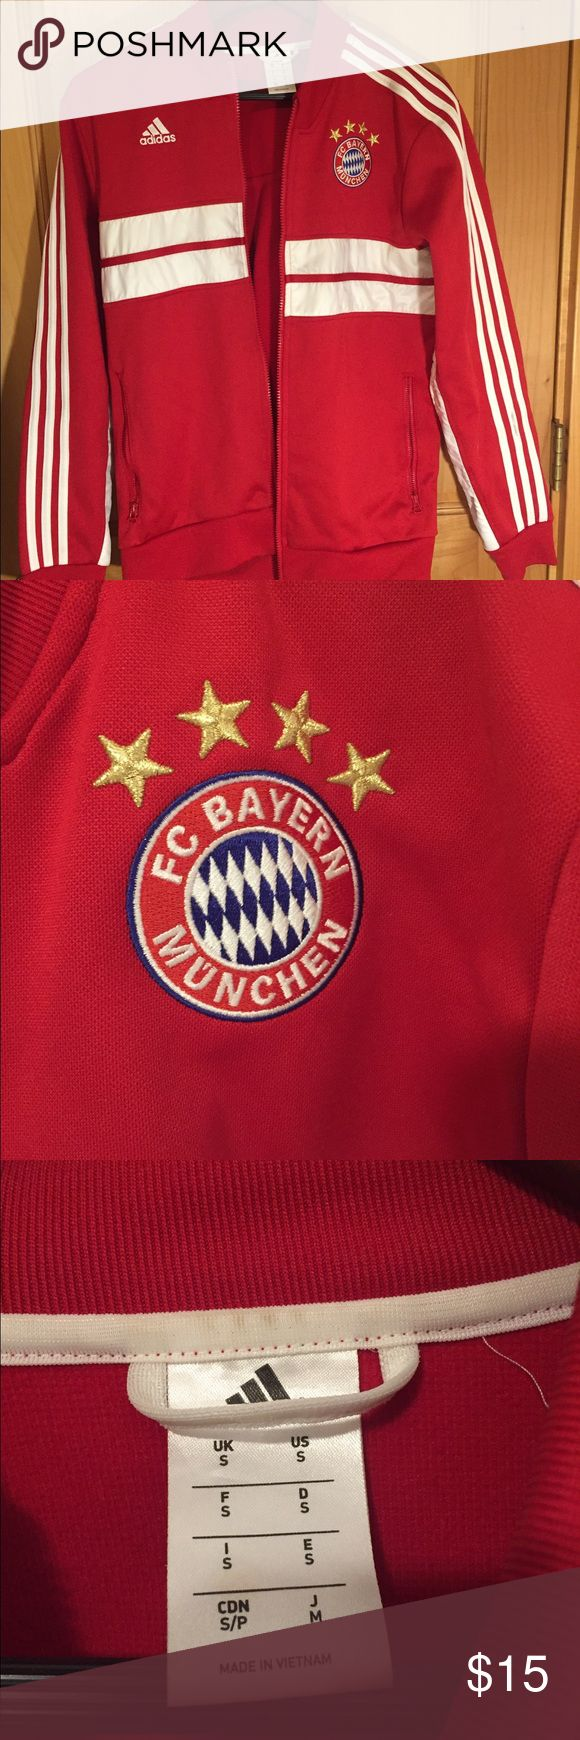 Bayern Munchen Track jacket Awesome track jacket, womens small - show off your team spirit! Adidas Jackets & Coats